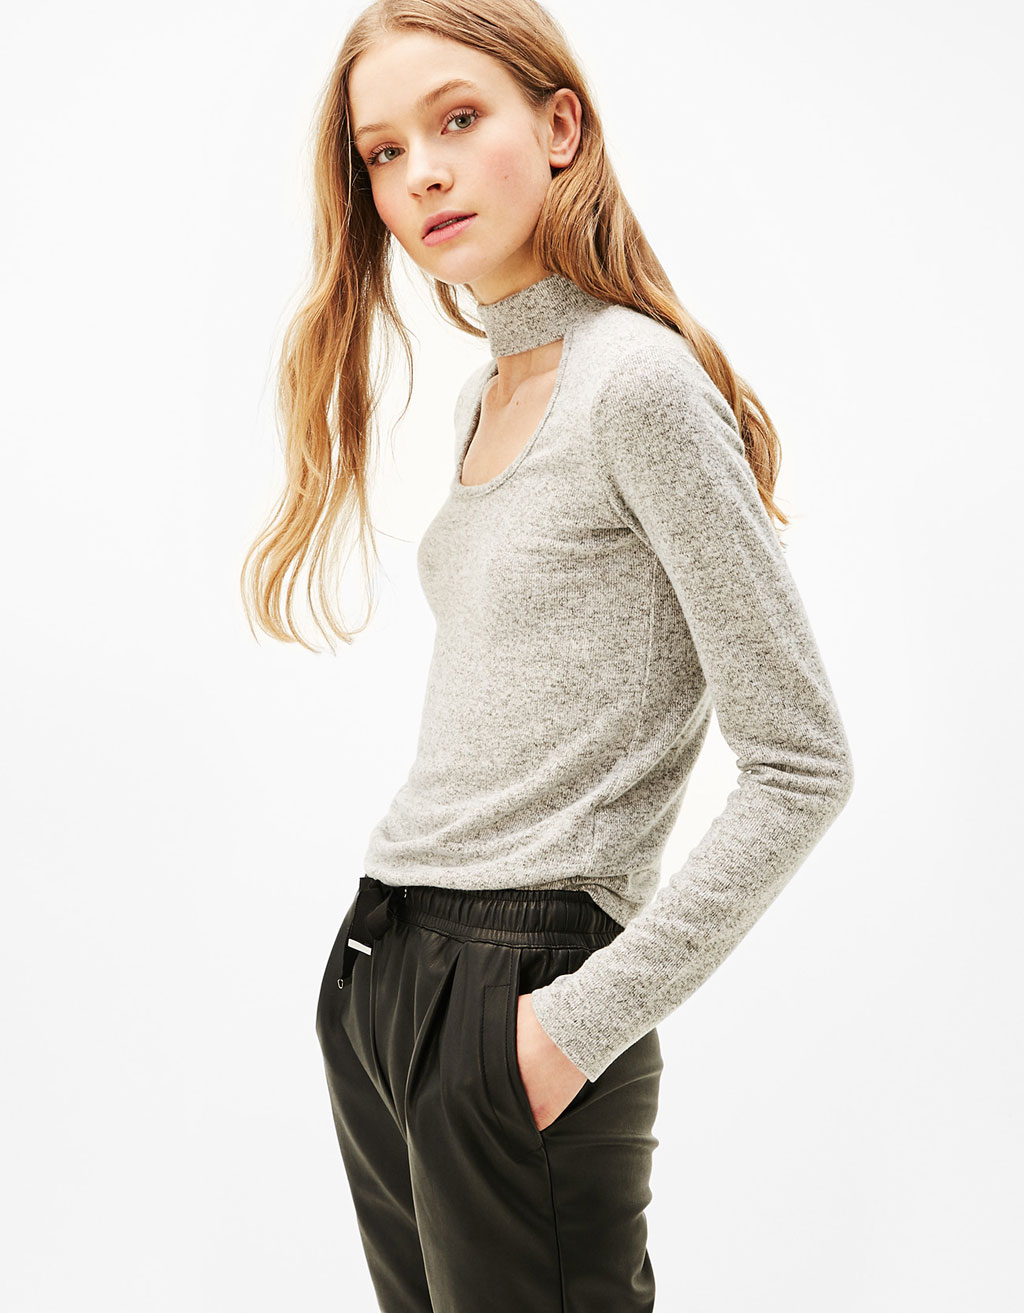 Sweater with choker neckline